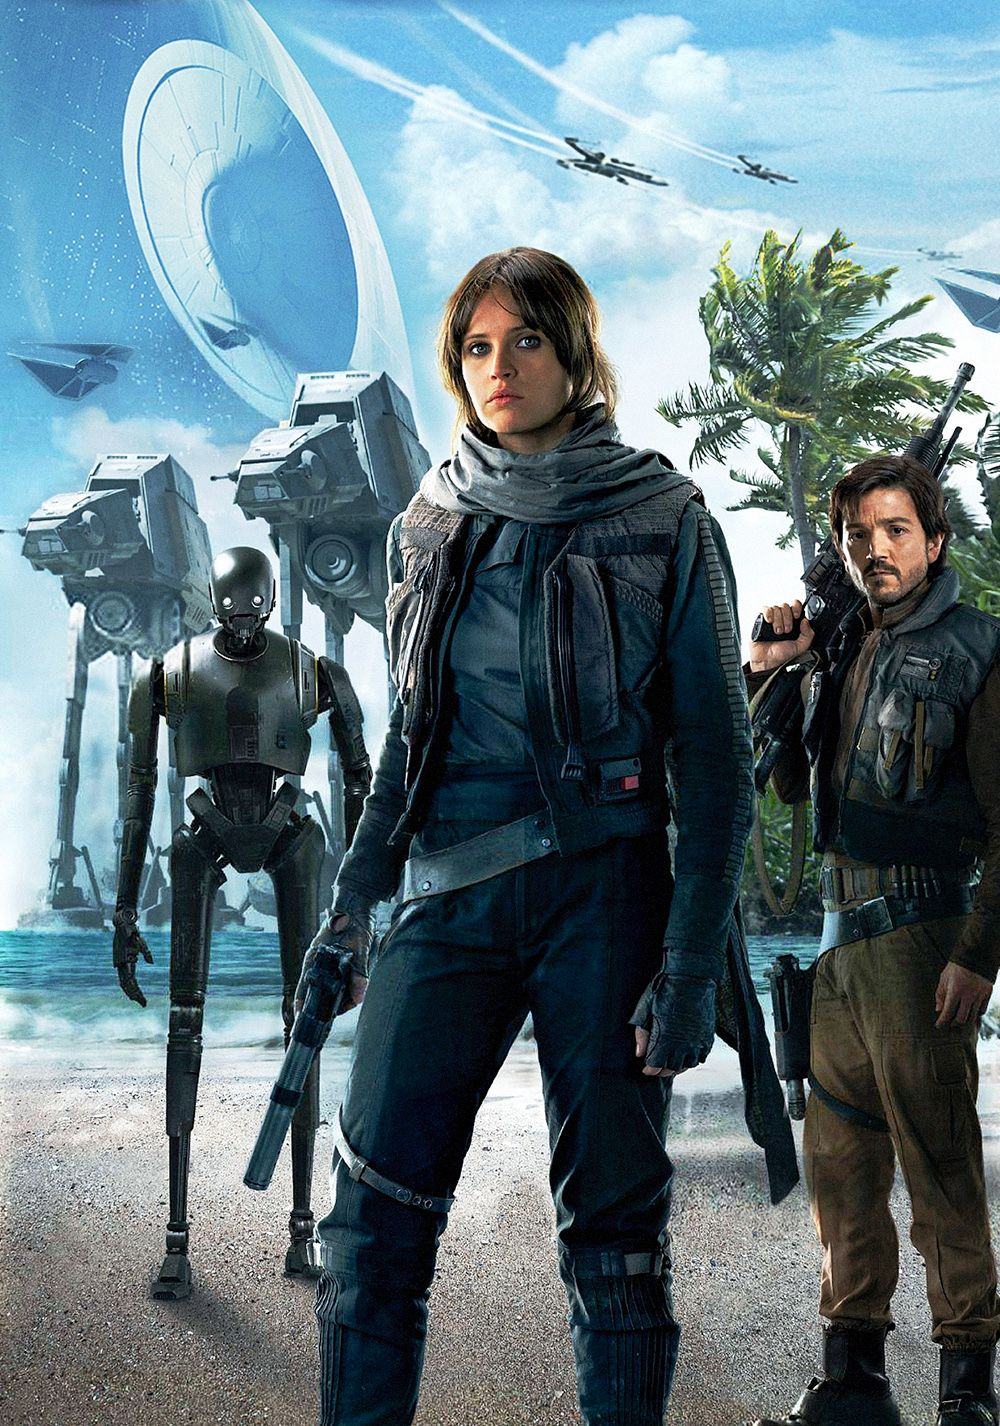 Rogue One Movie Poster Star Wars Rogue One Movie Fanart Fanart Tv Star Wars Art Star Wars Painting Star Wars Poster